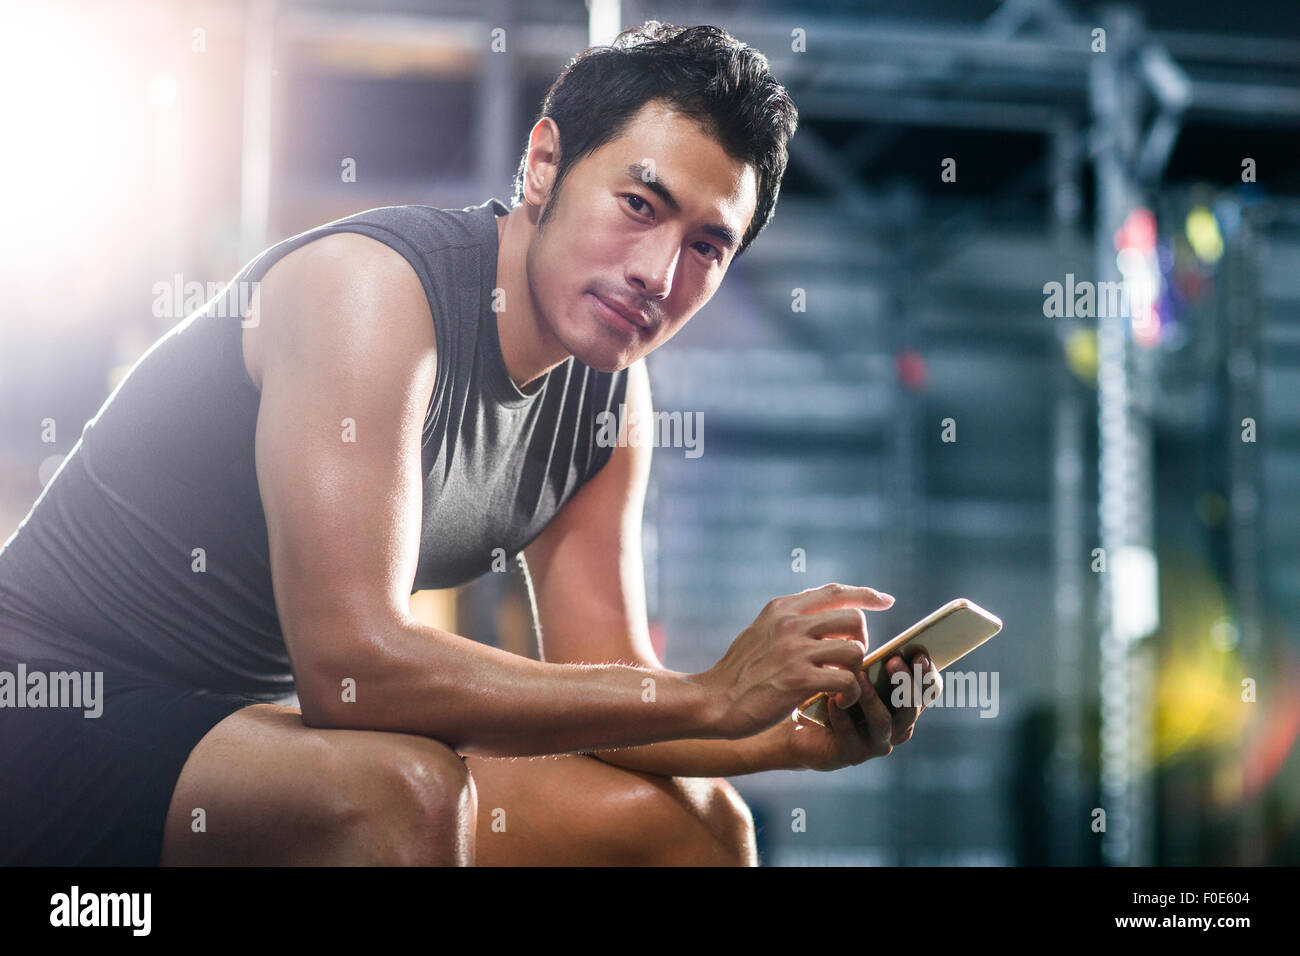 Young man using smart phone in gym Stock Photo